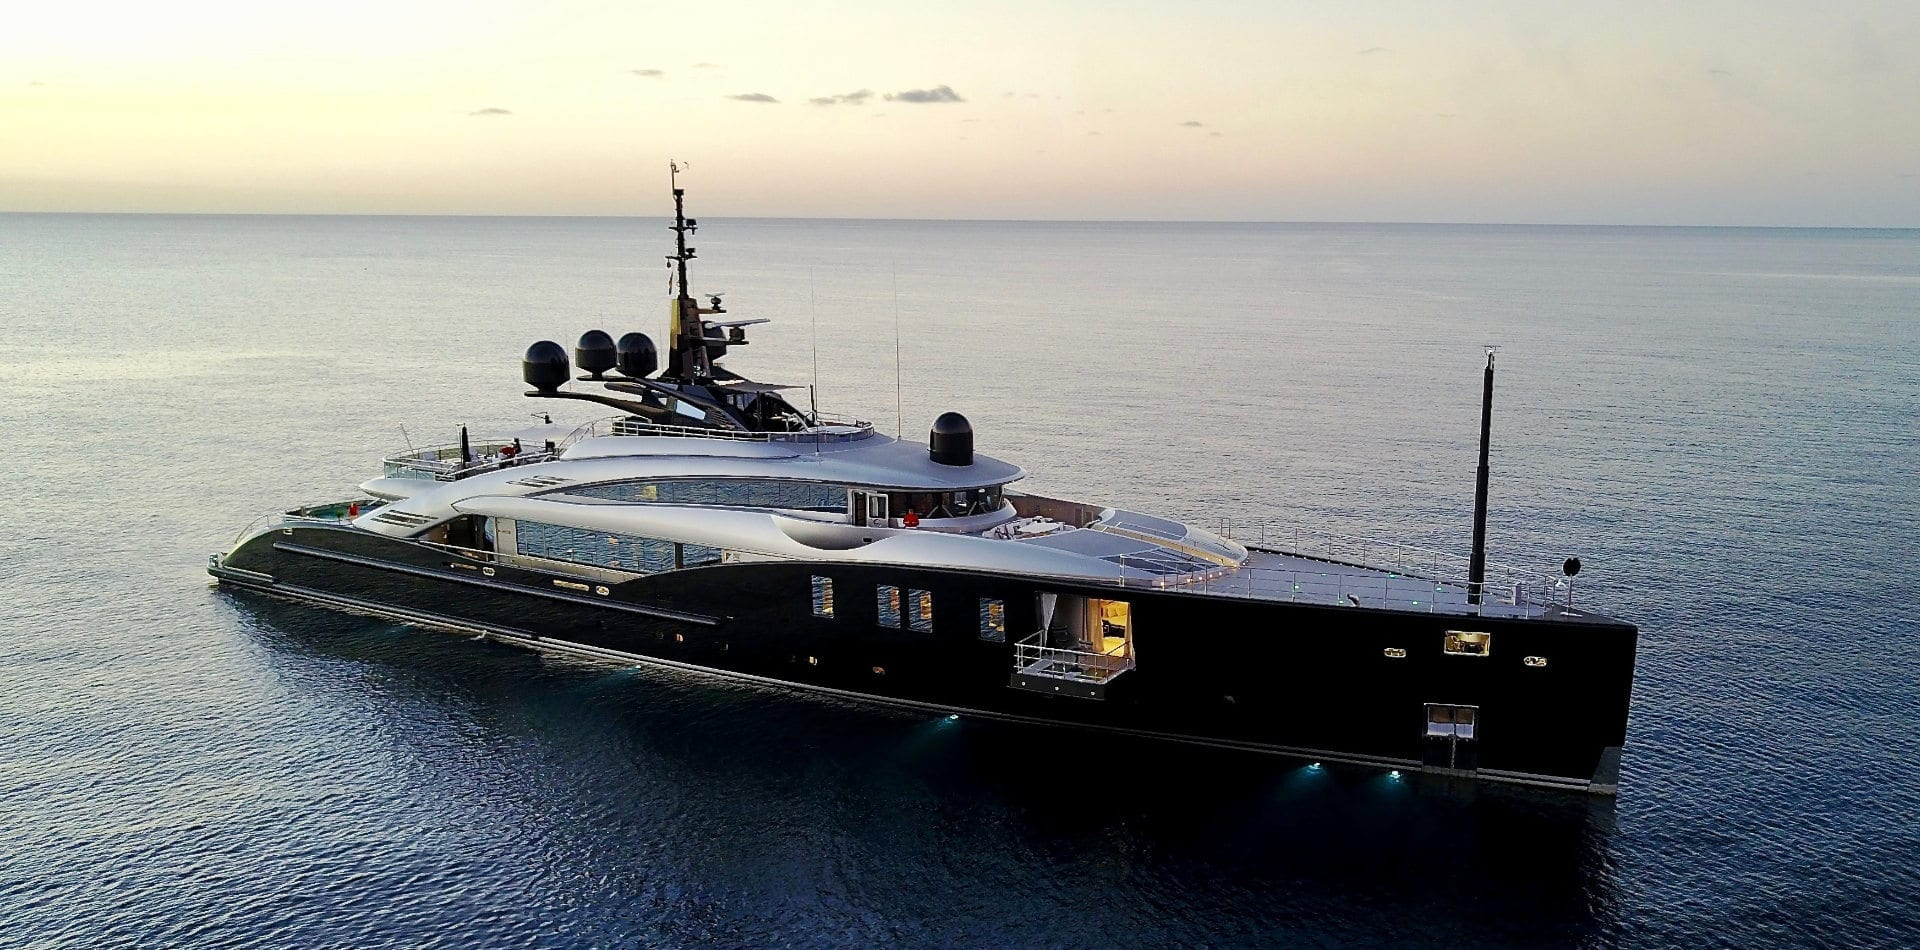 Aerial shot of luxury yacht Okto